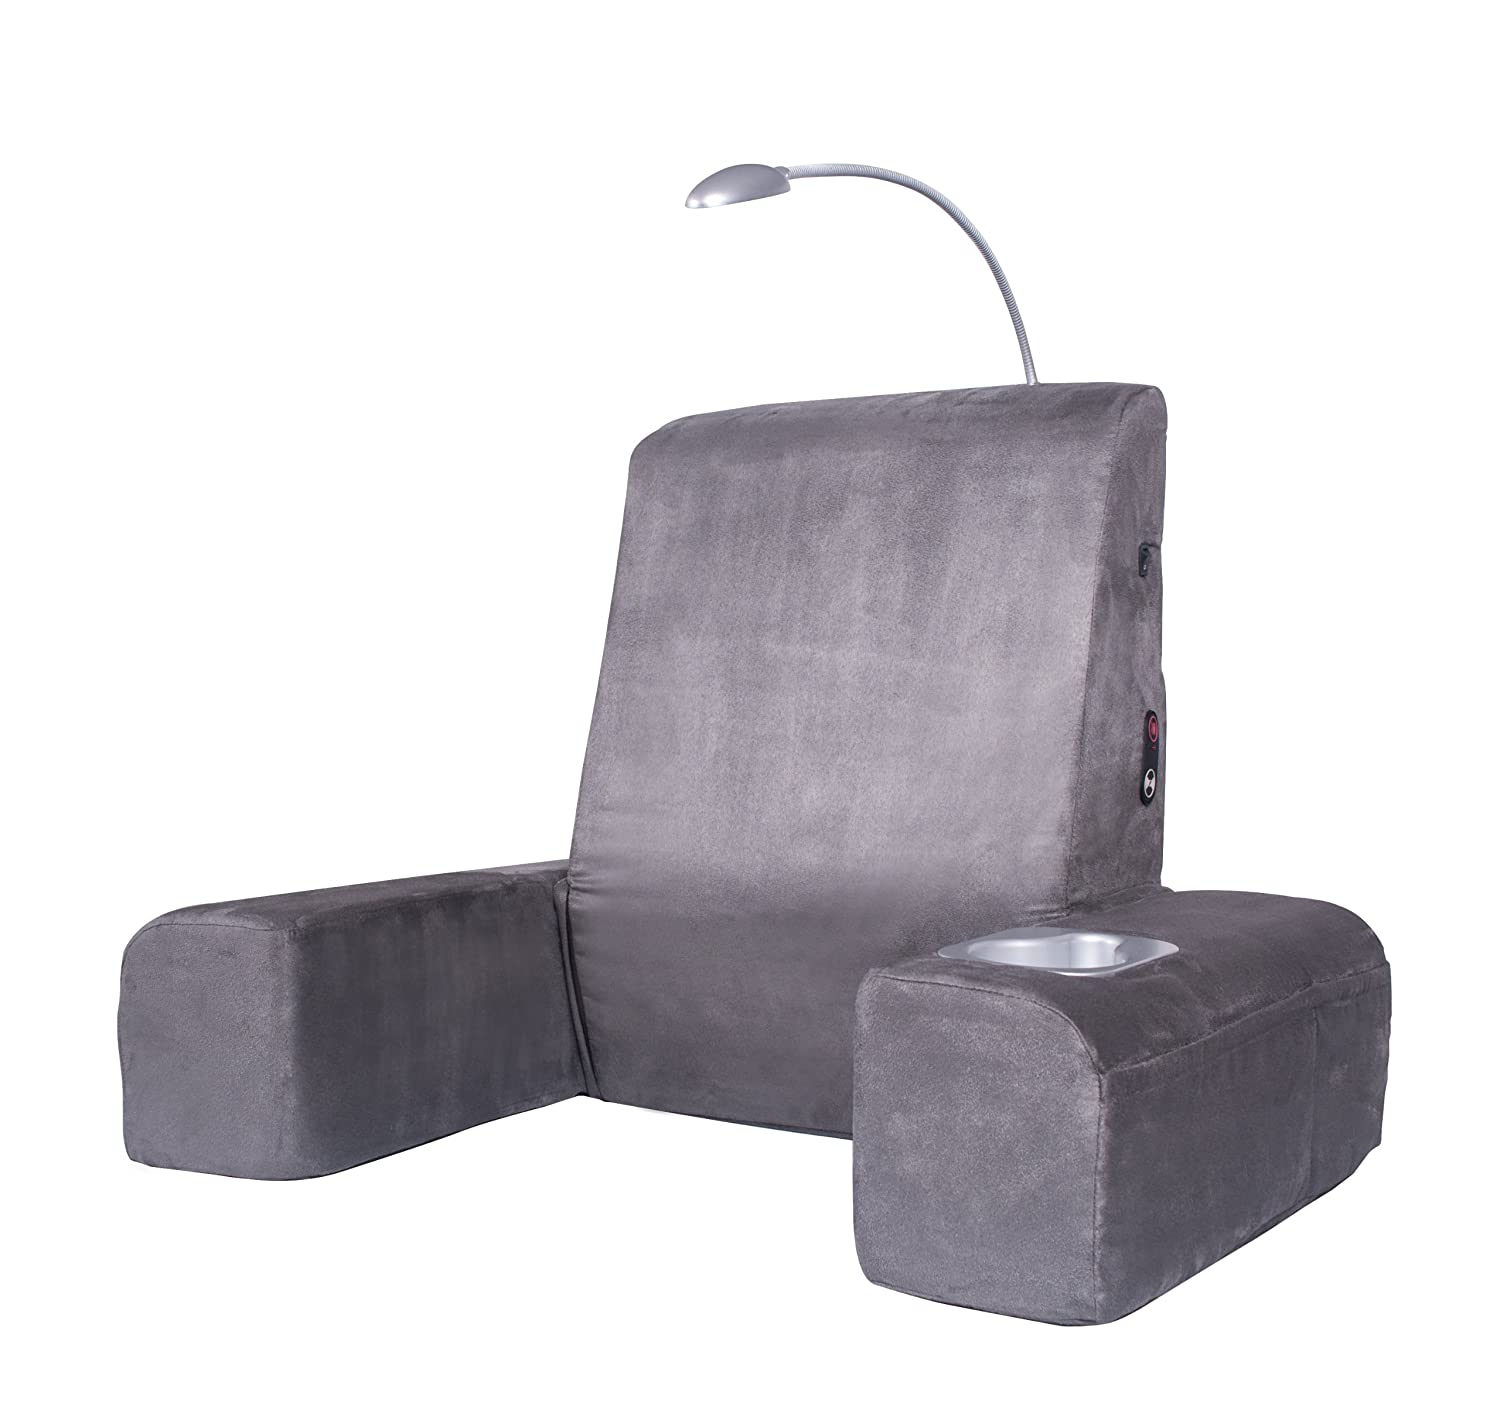 Carepeutic Bed Lounger with Heated Comfort Massager, Gray